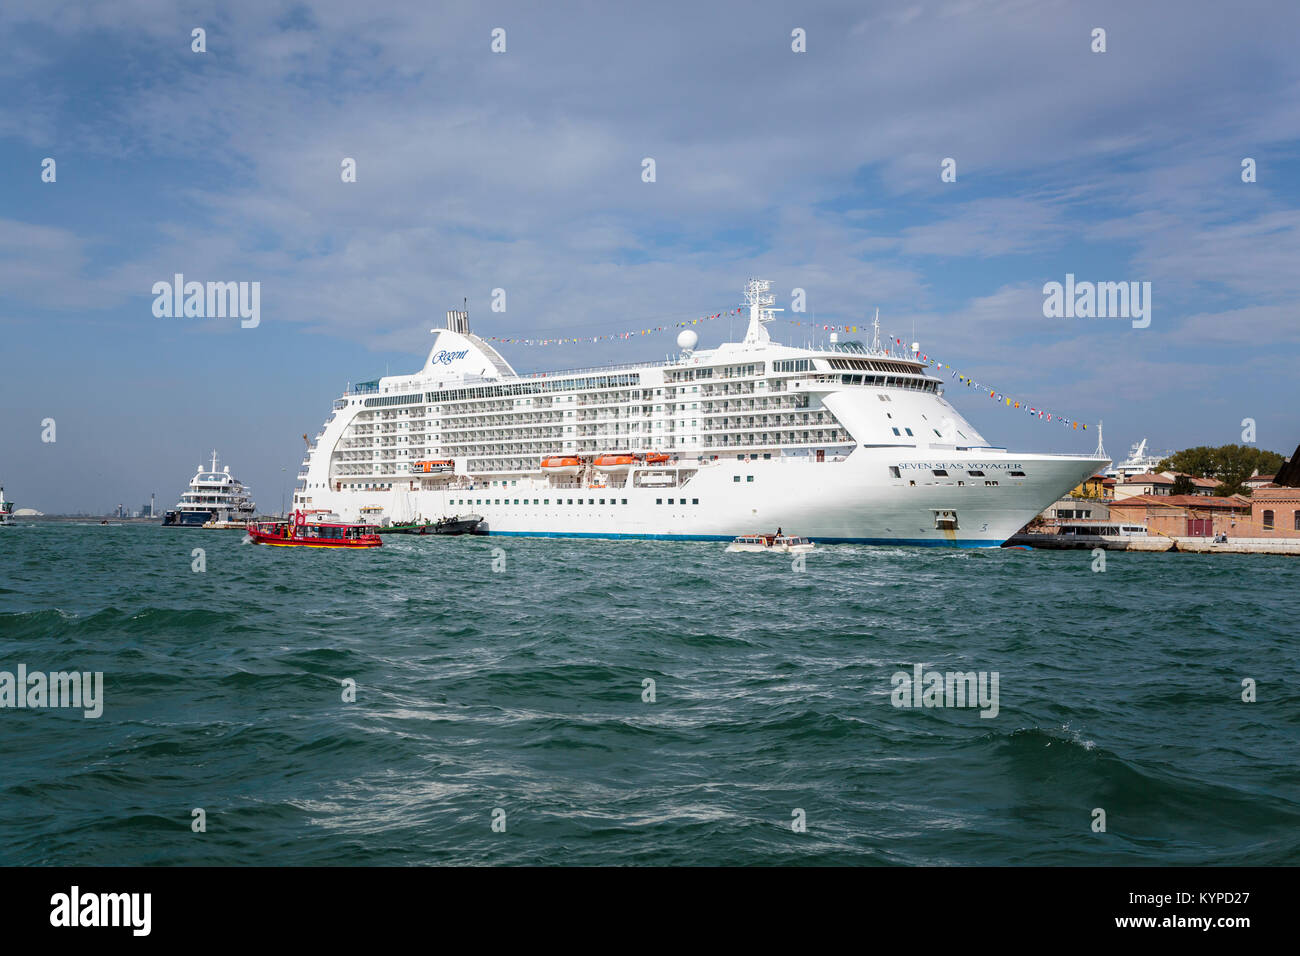 The Seven Seas Voyager Regent cruise ship docked in port in Veneto, Venice, Italy, Europe. - Stock Image